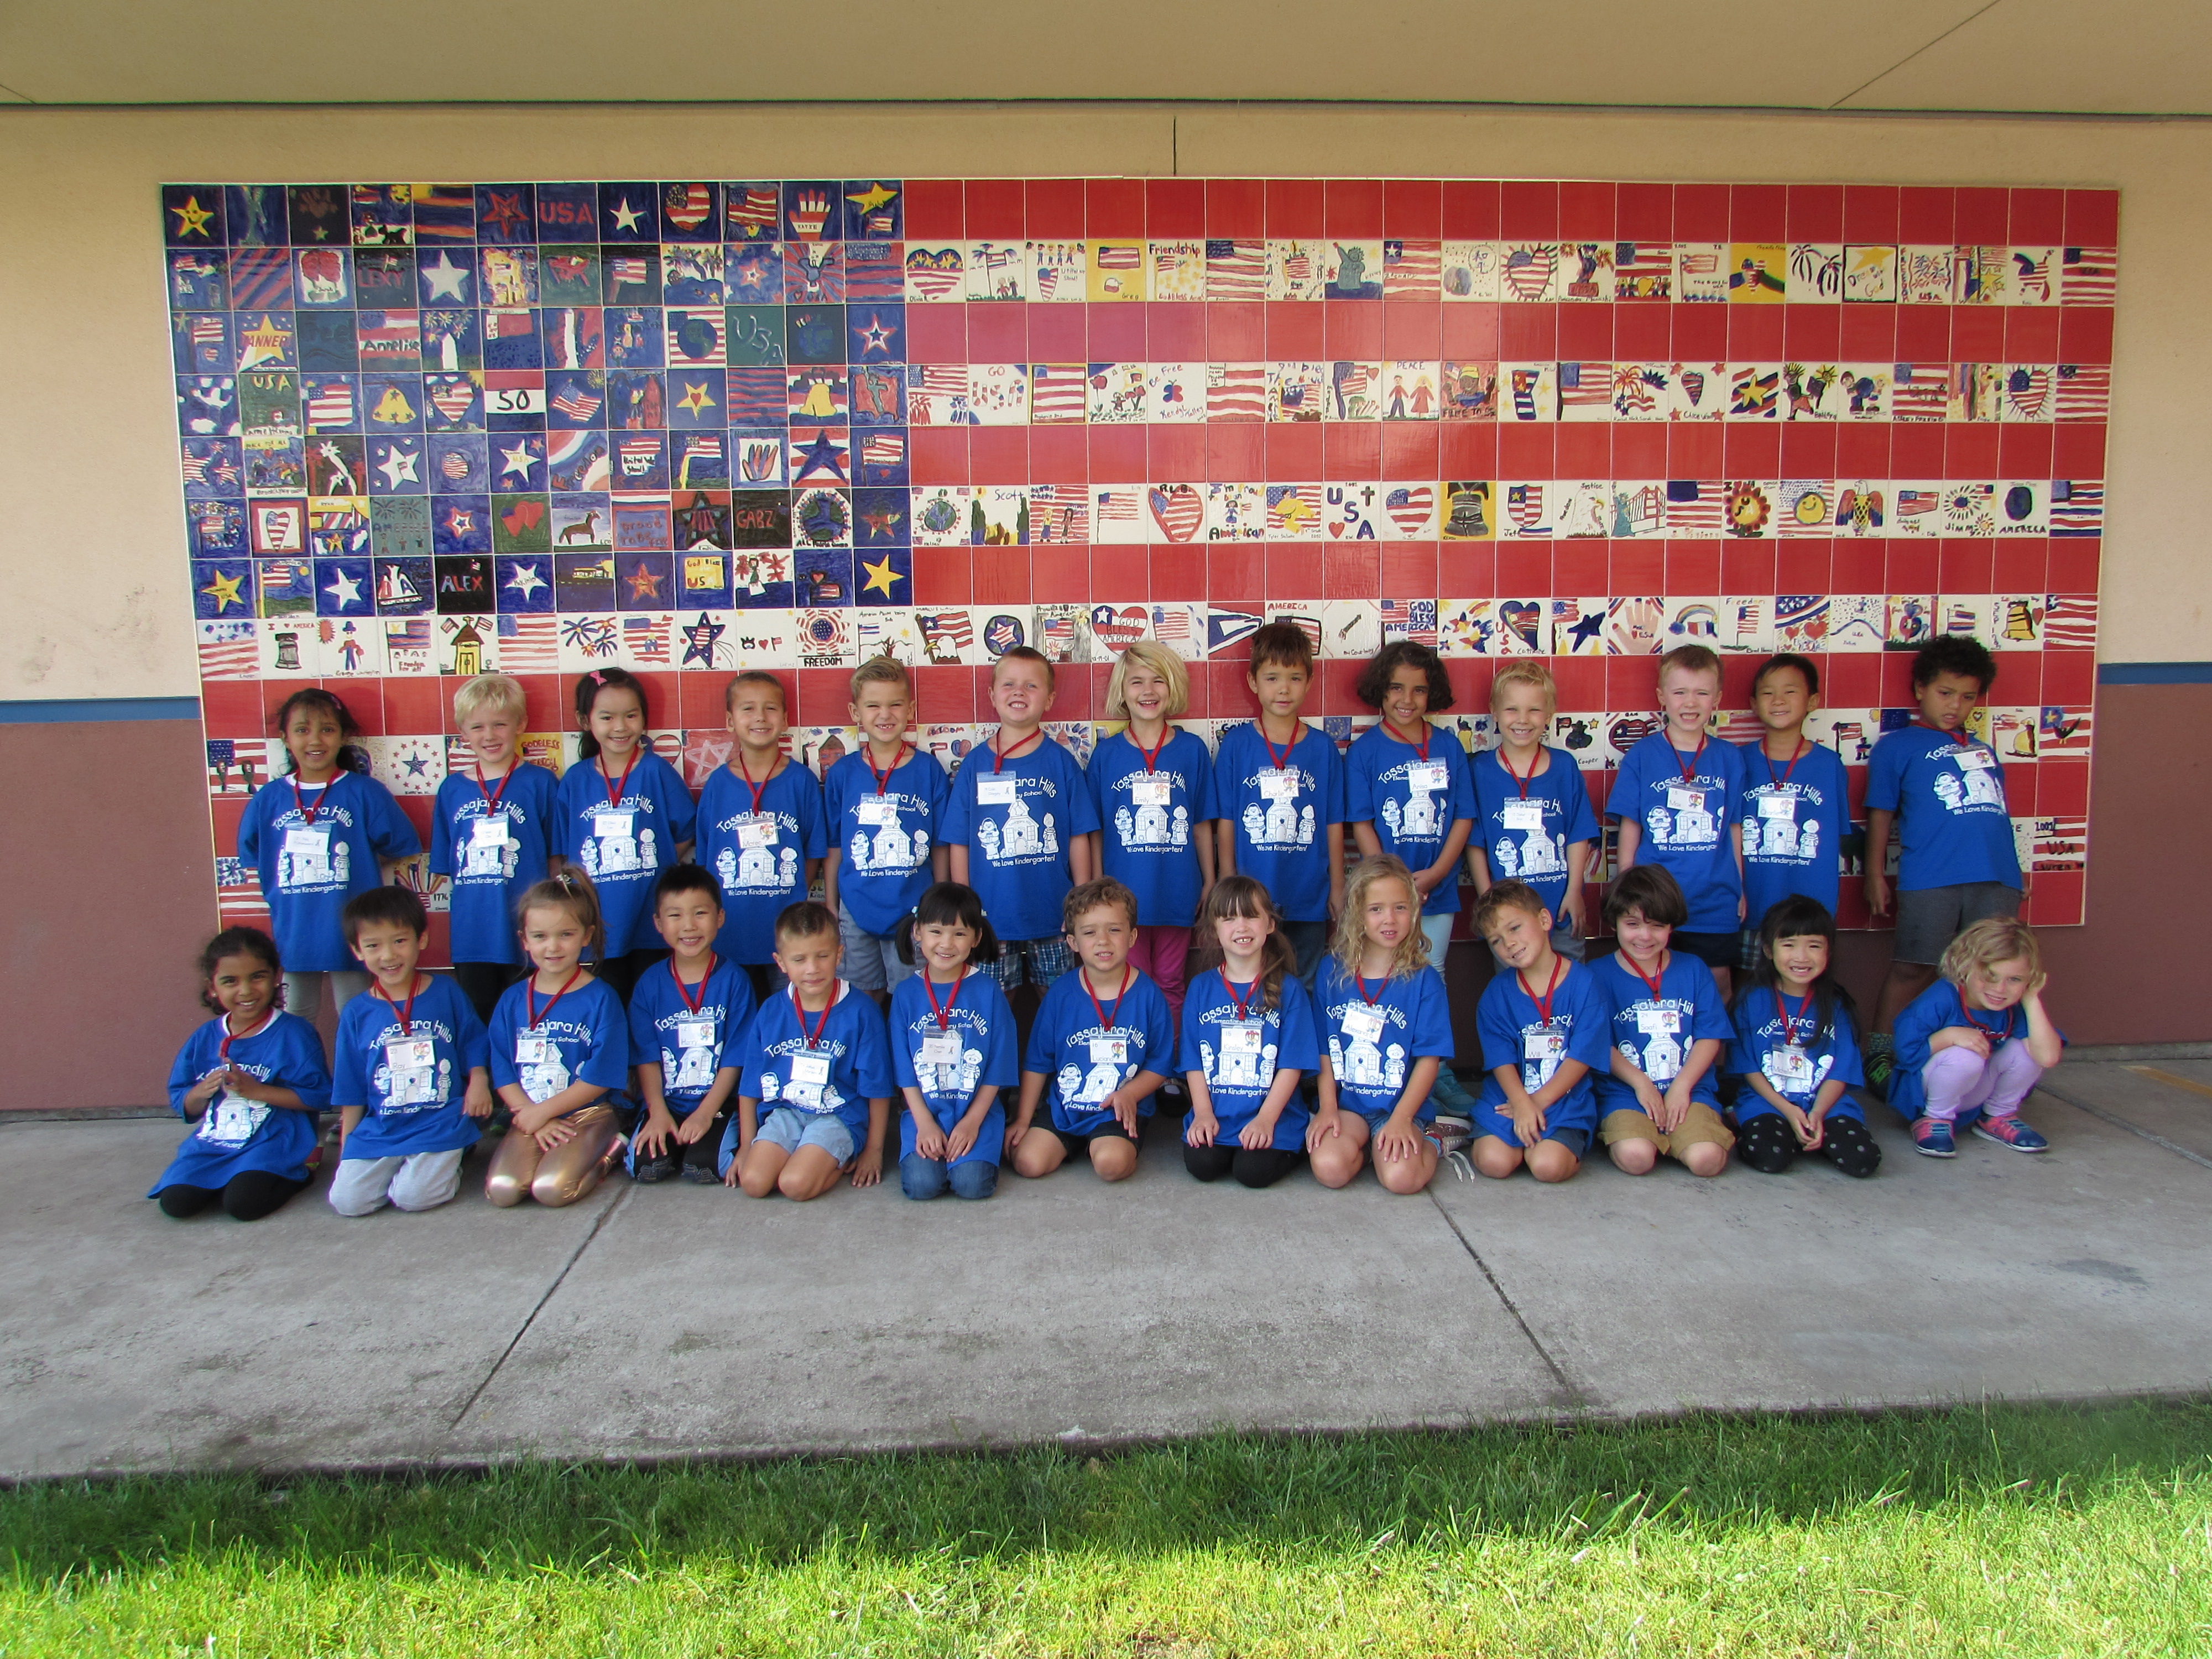 We love our blue shirts! August 2018